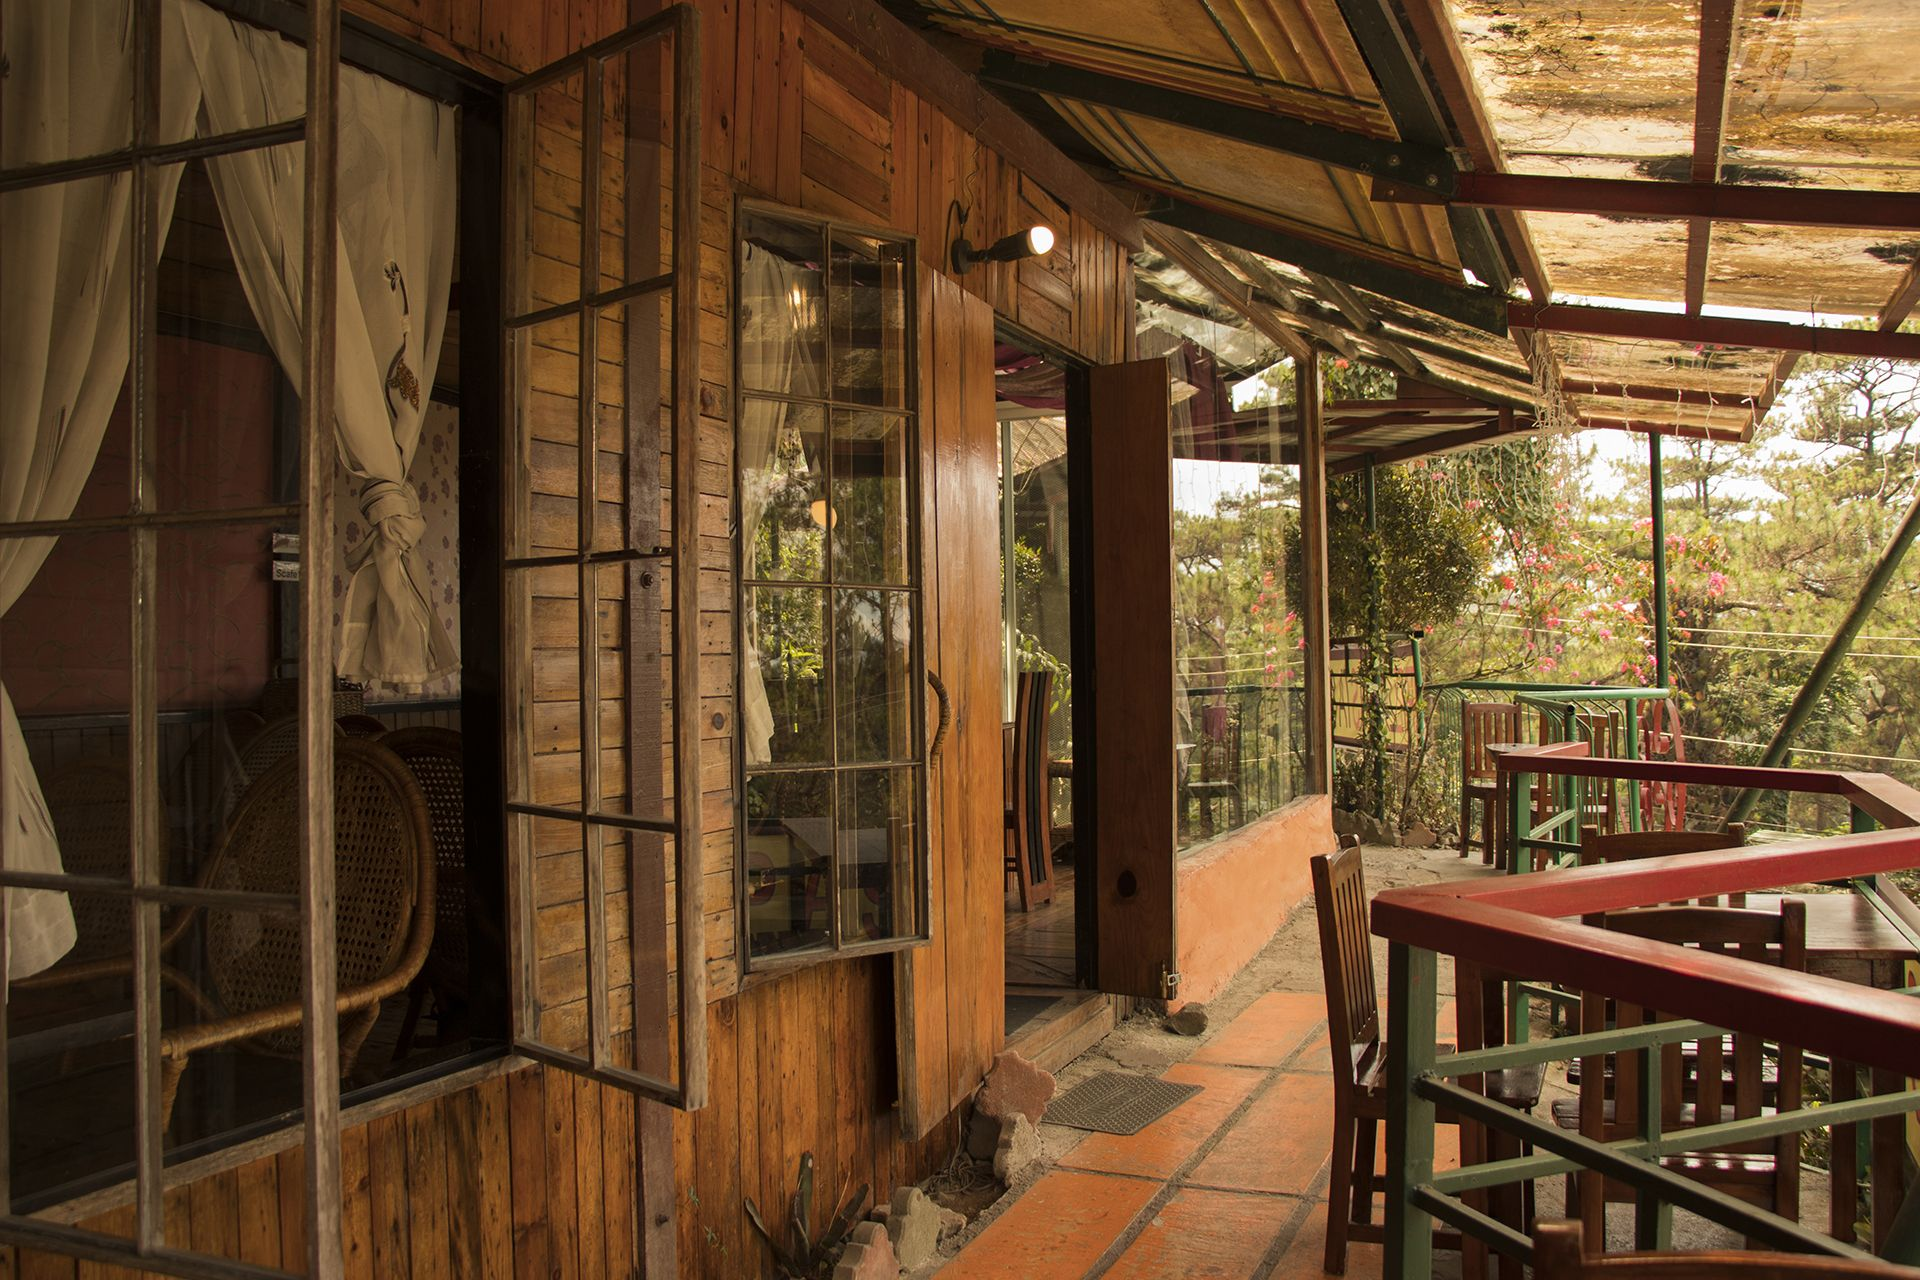 Baguio City Food Trip 2020: Tatler Visits Top Dining Spots In The City Of Pines